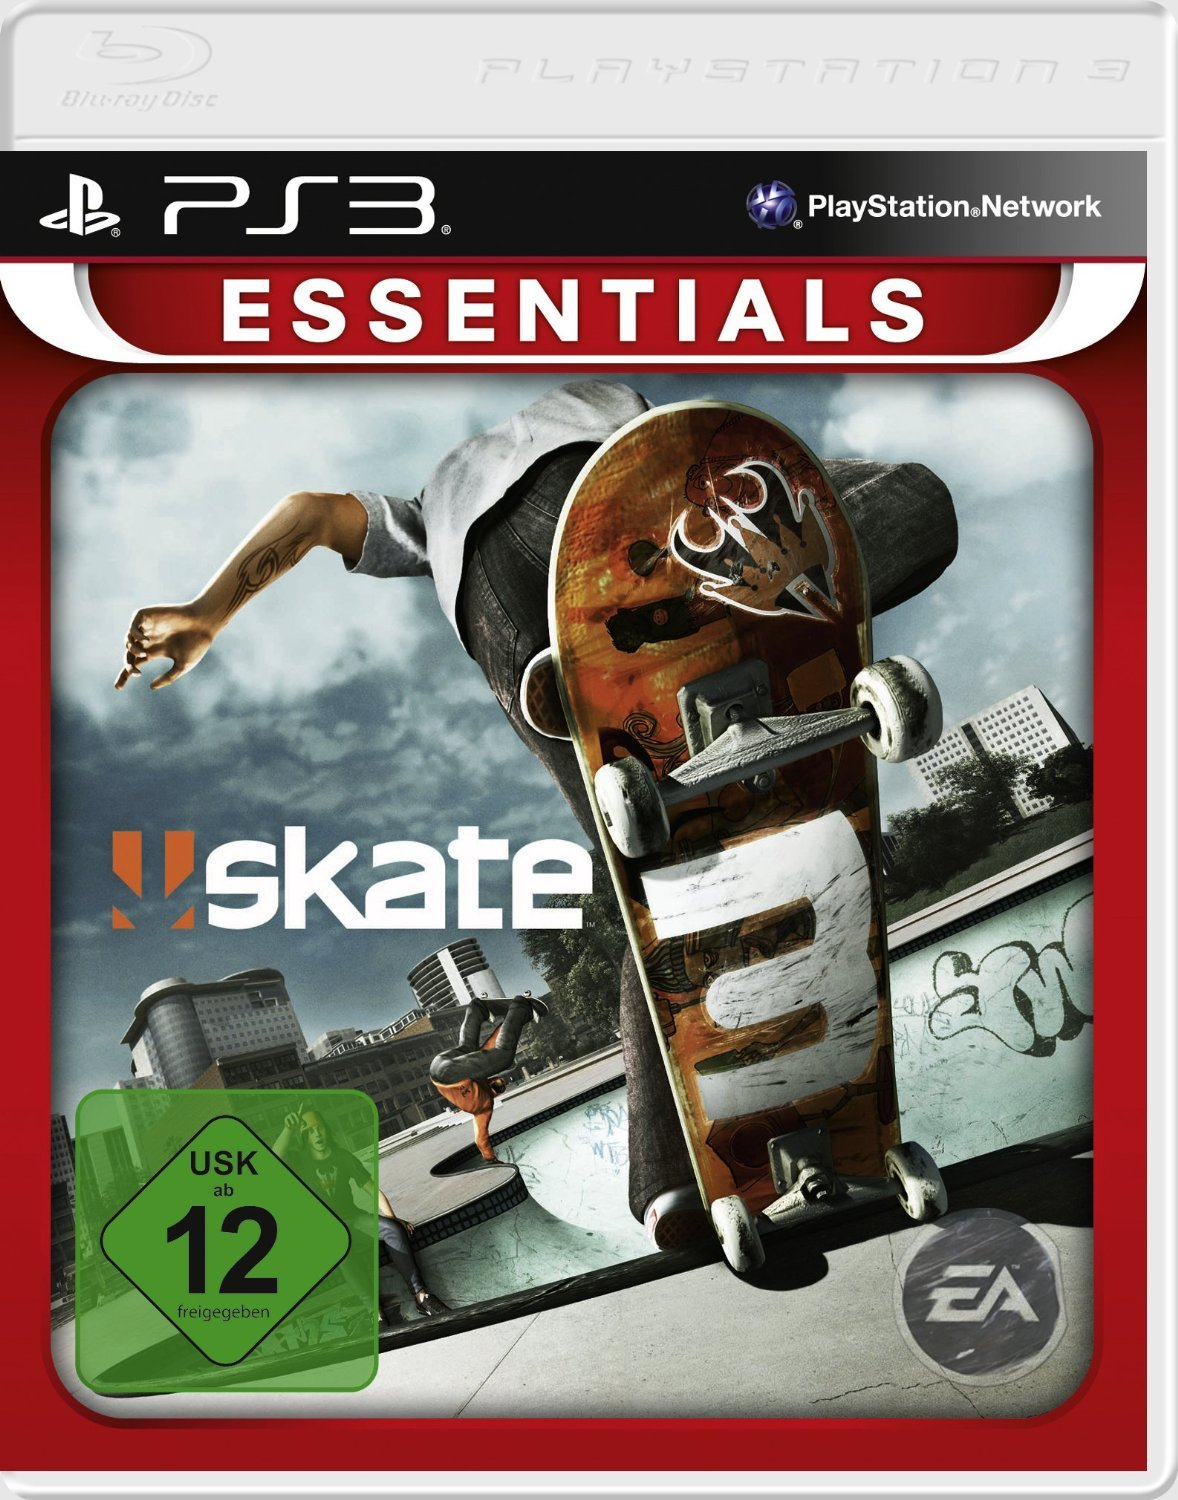 skateboard ps3 games